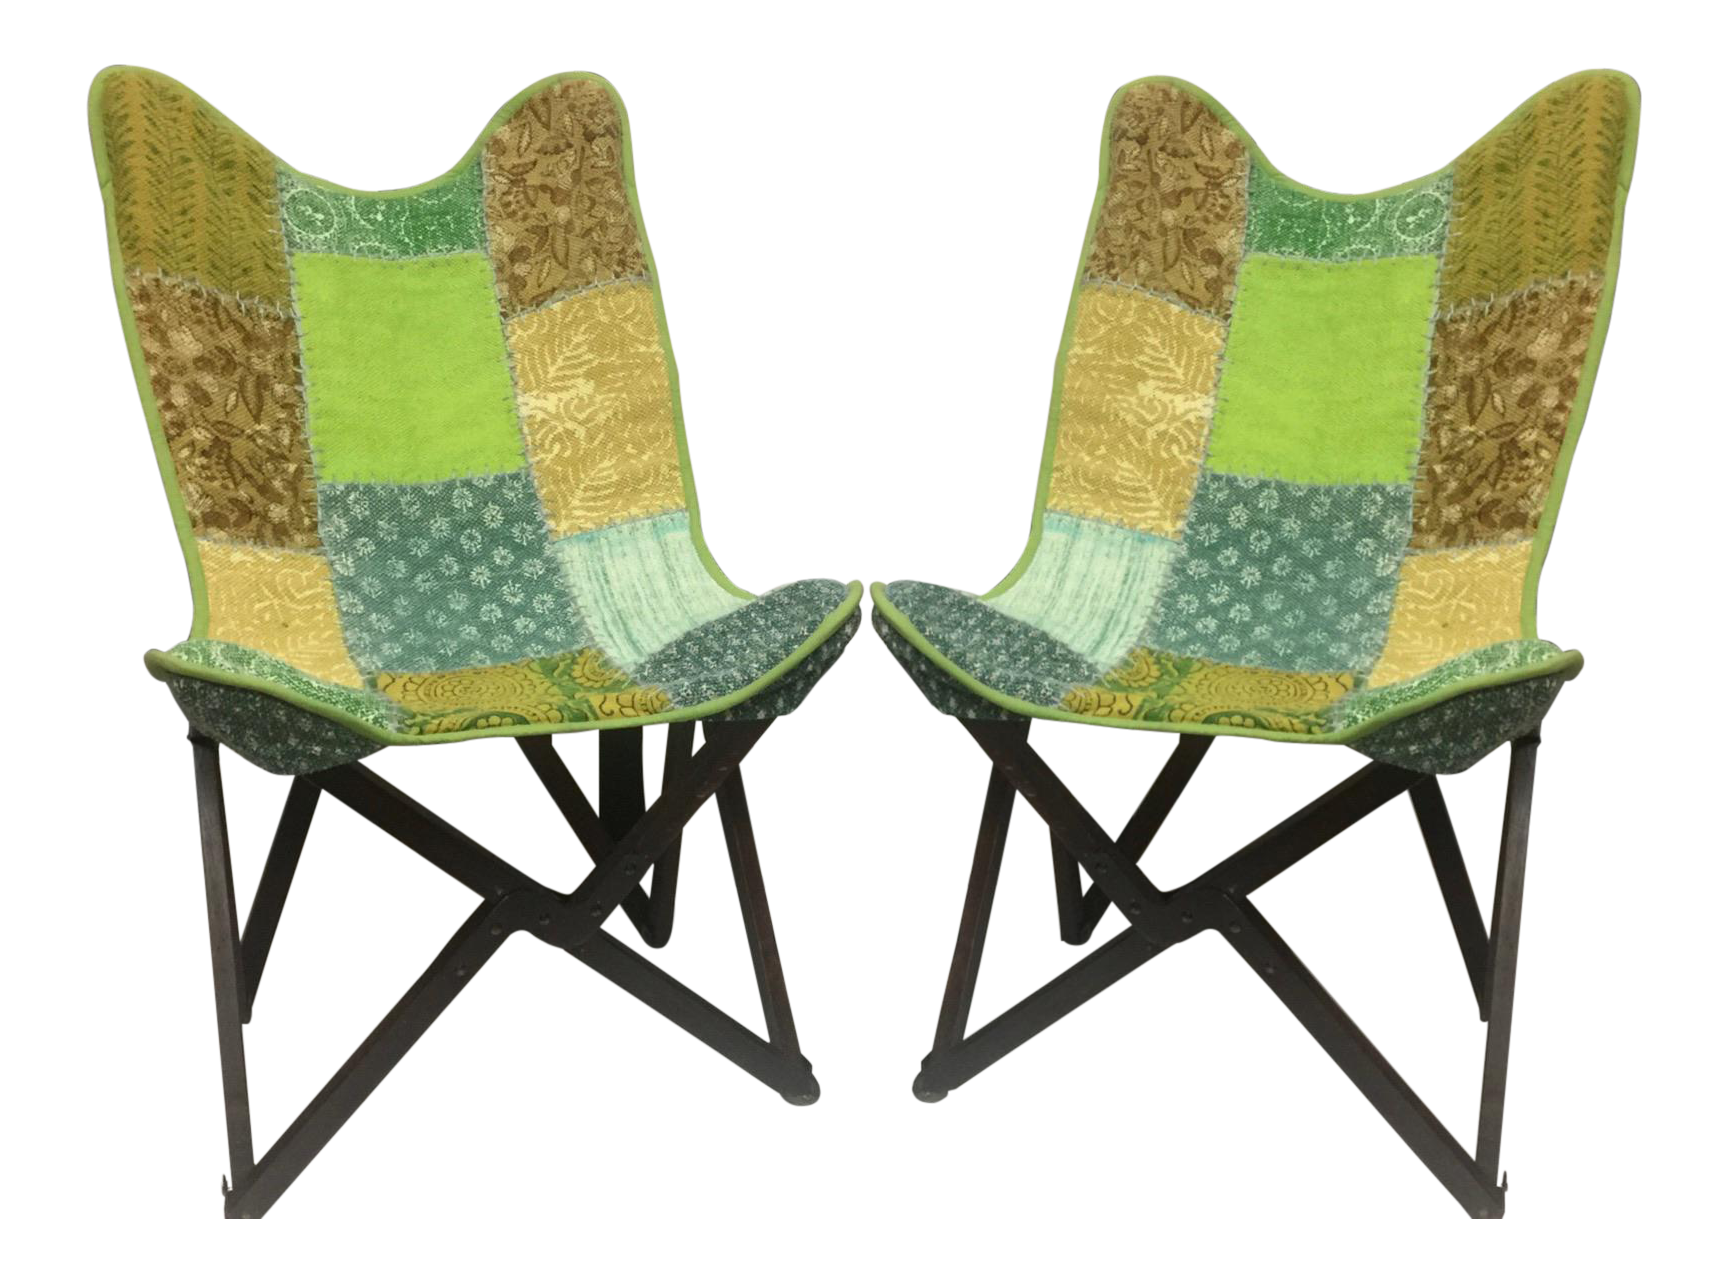 Vintage Handcrafted Sling Back Folding Chairs   A Pair   Image 1 Of 5